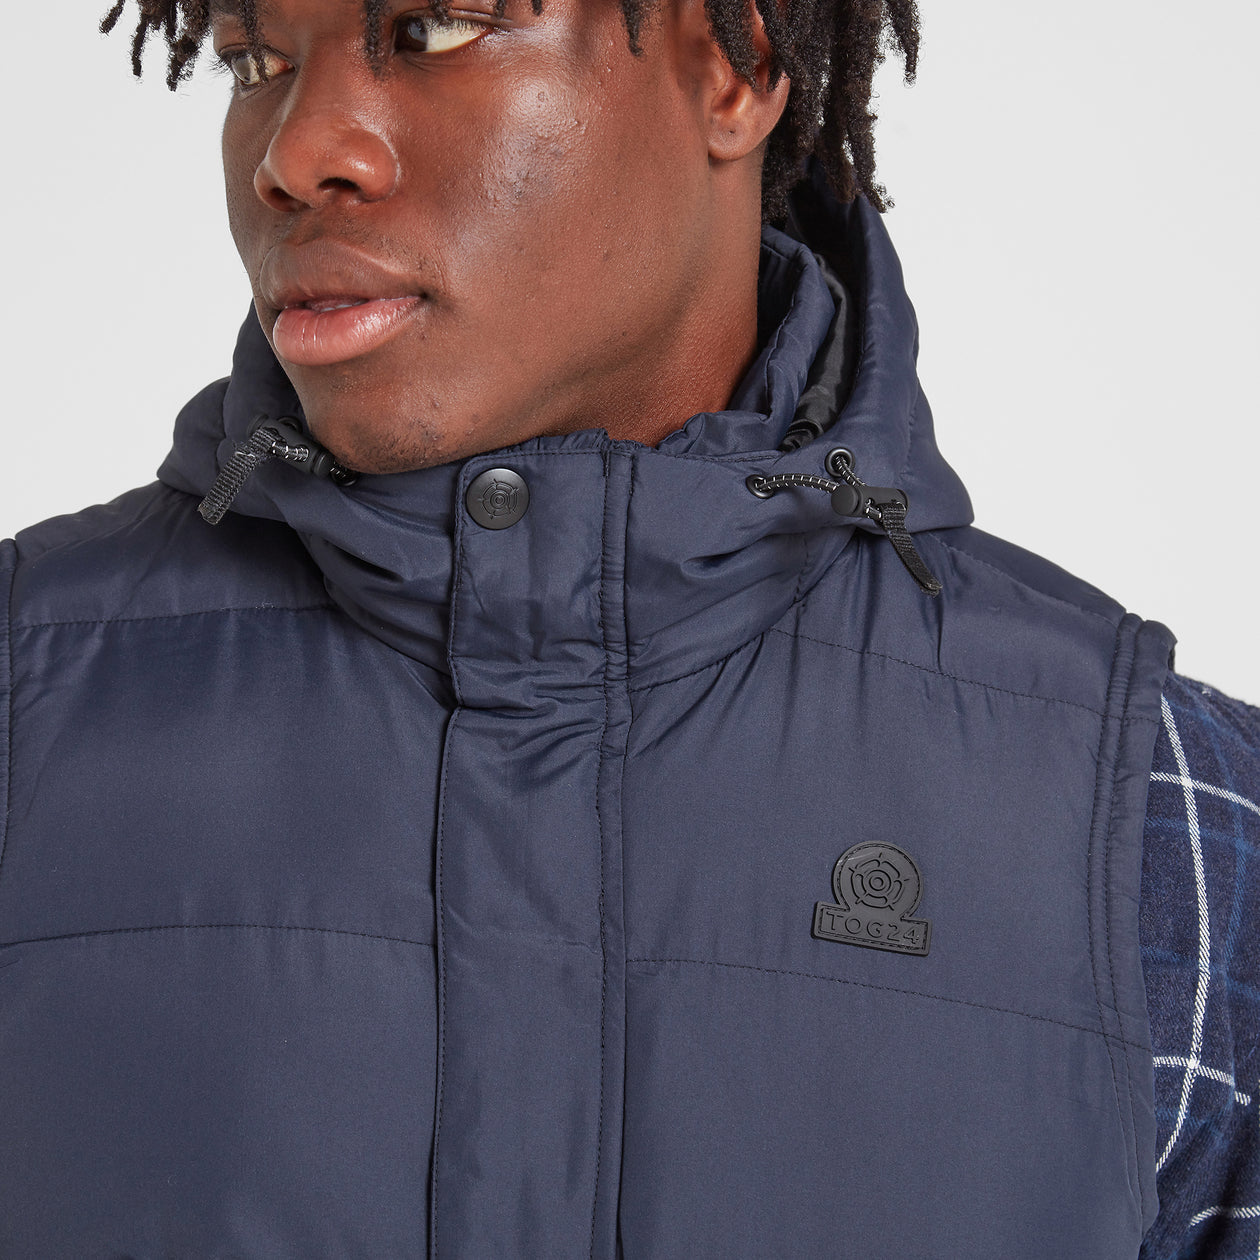 Caliber Mens Insulated Gilet - Navy image 4